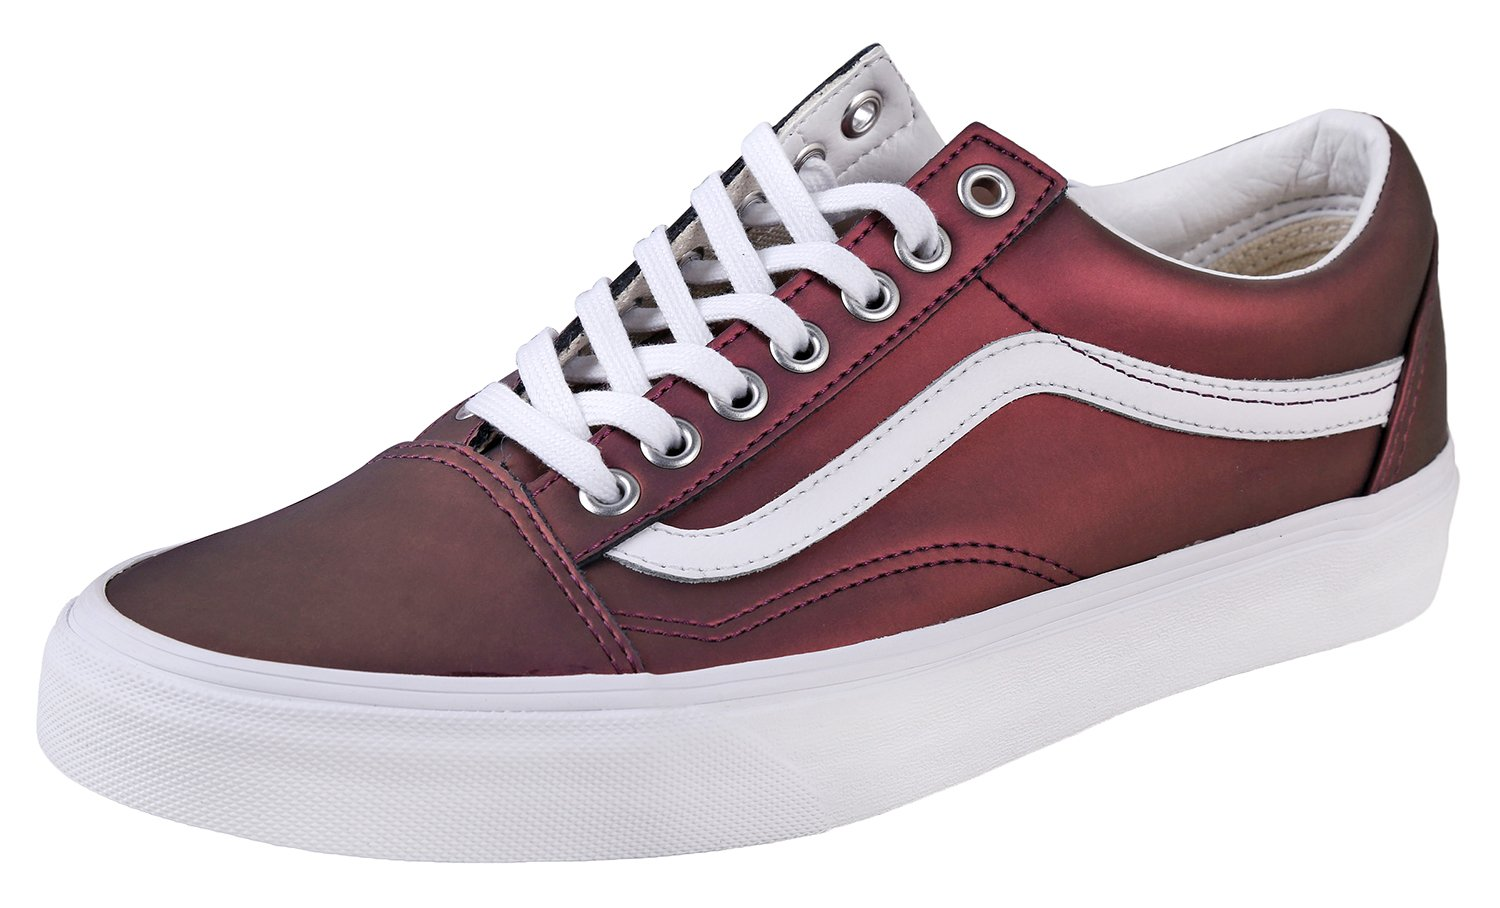 adee8fbc2e Galleon - Vans Women s Muted Metallic Old Skool Skate Shoes (10.5 B(M) US